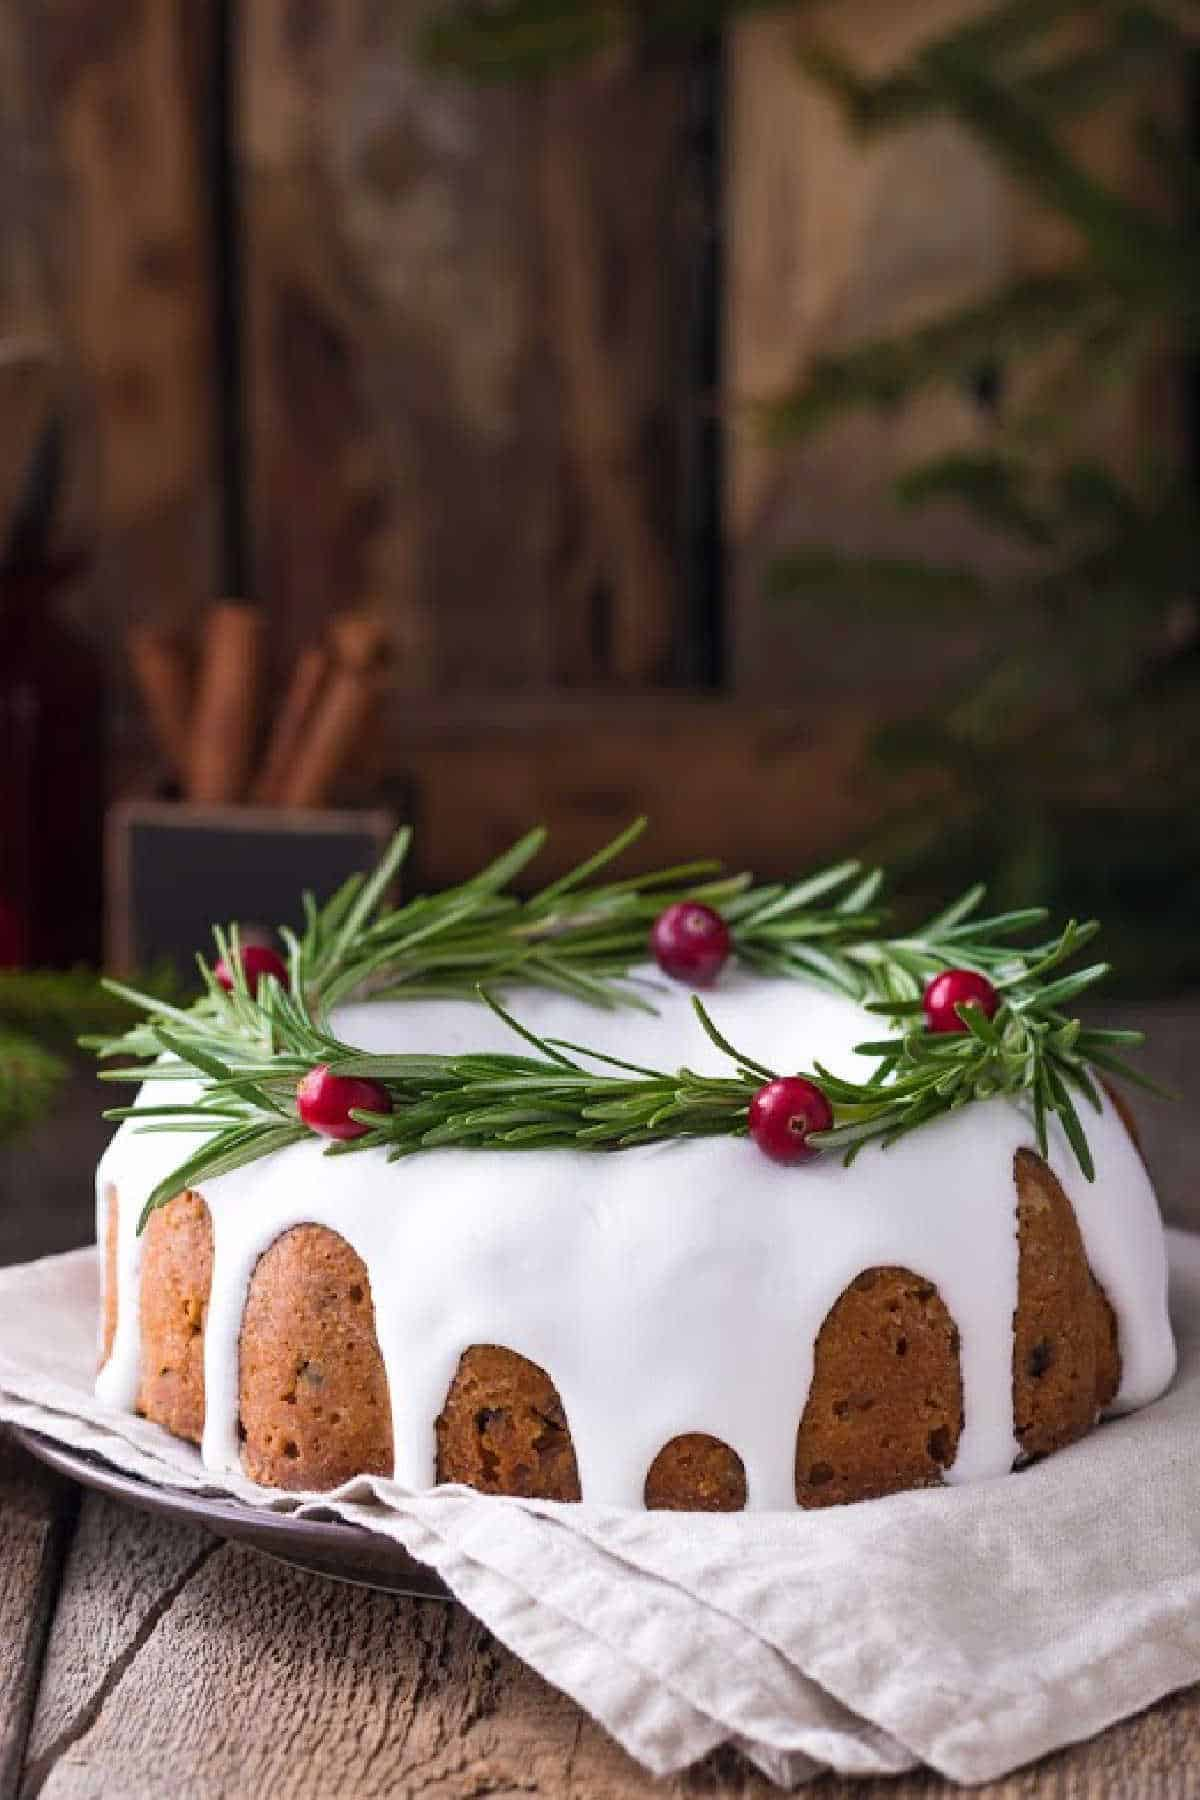 Bundt Cake with cranberries on wooden surface